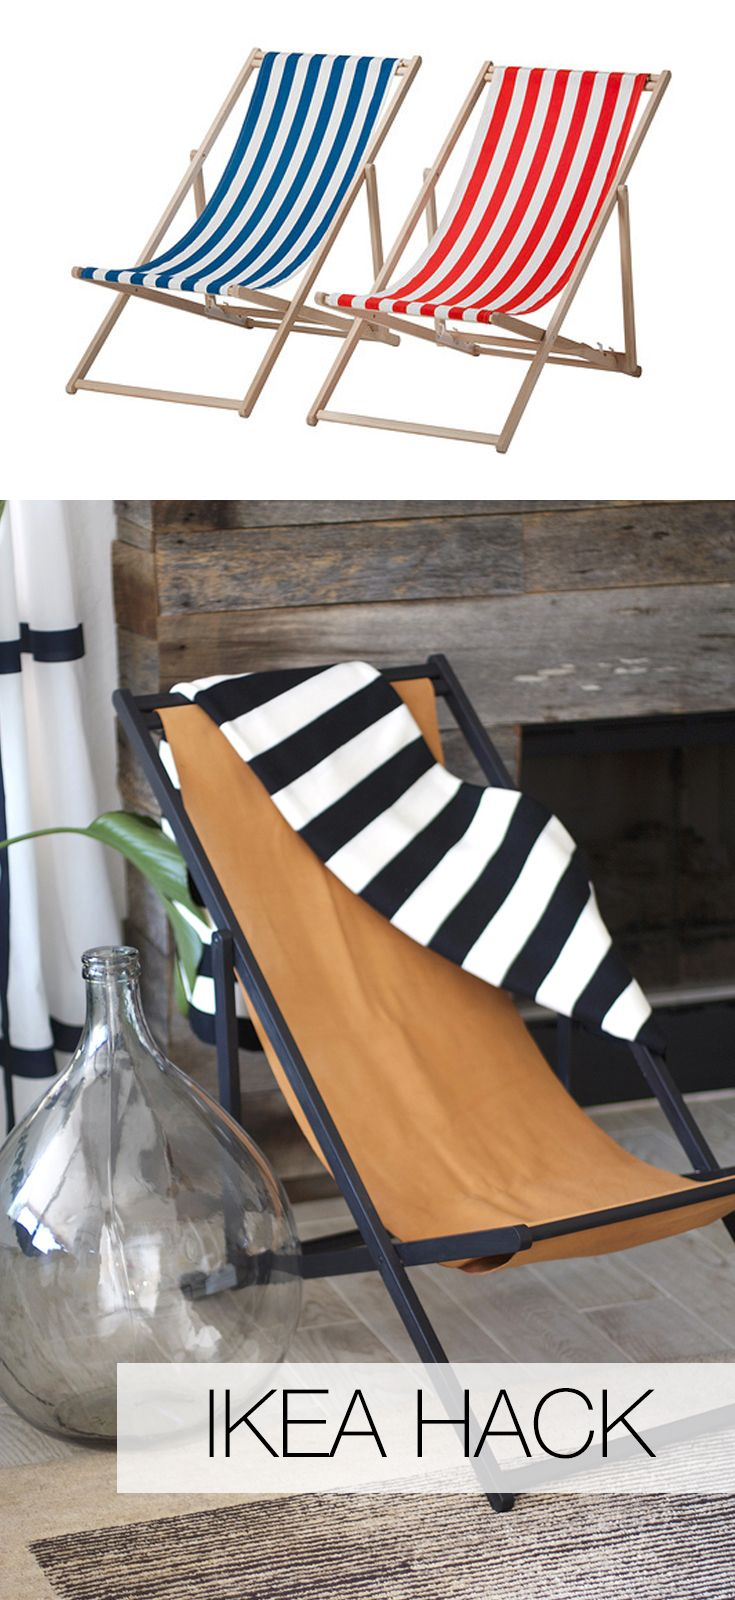 Beach Chair to Leather Slingback Chair | IKEA Hack | Kristi Murphy | http://www.kristimurphy.com/blog/diy-leather-chair